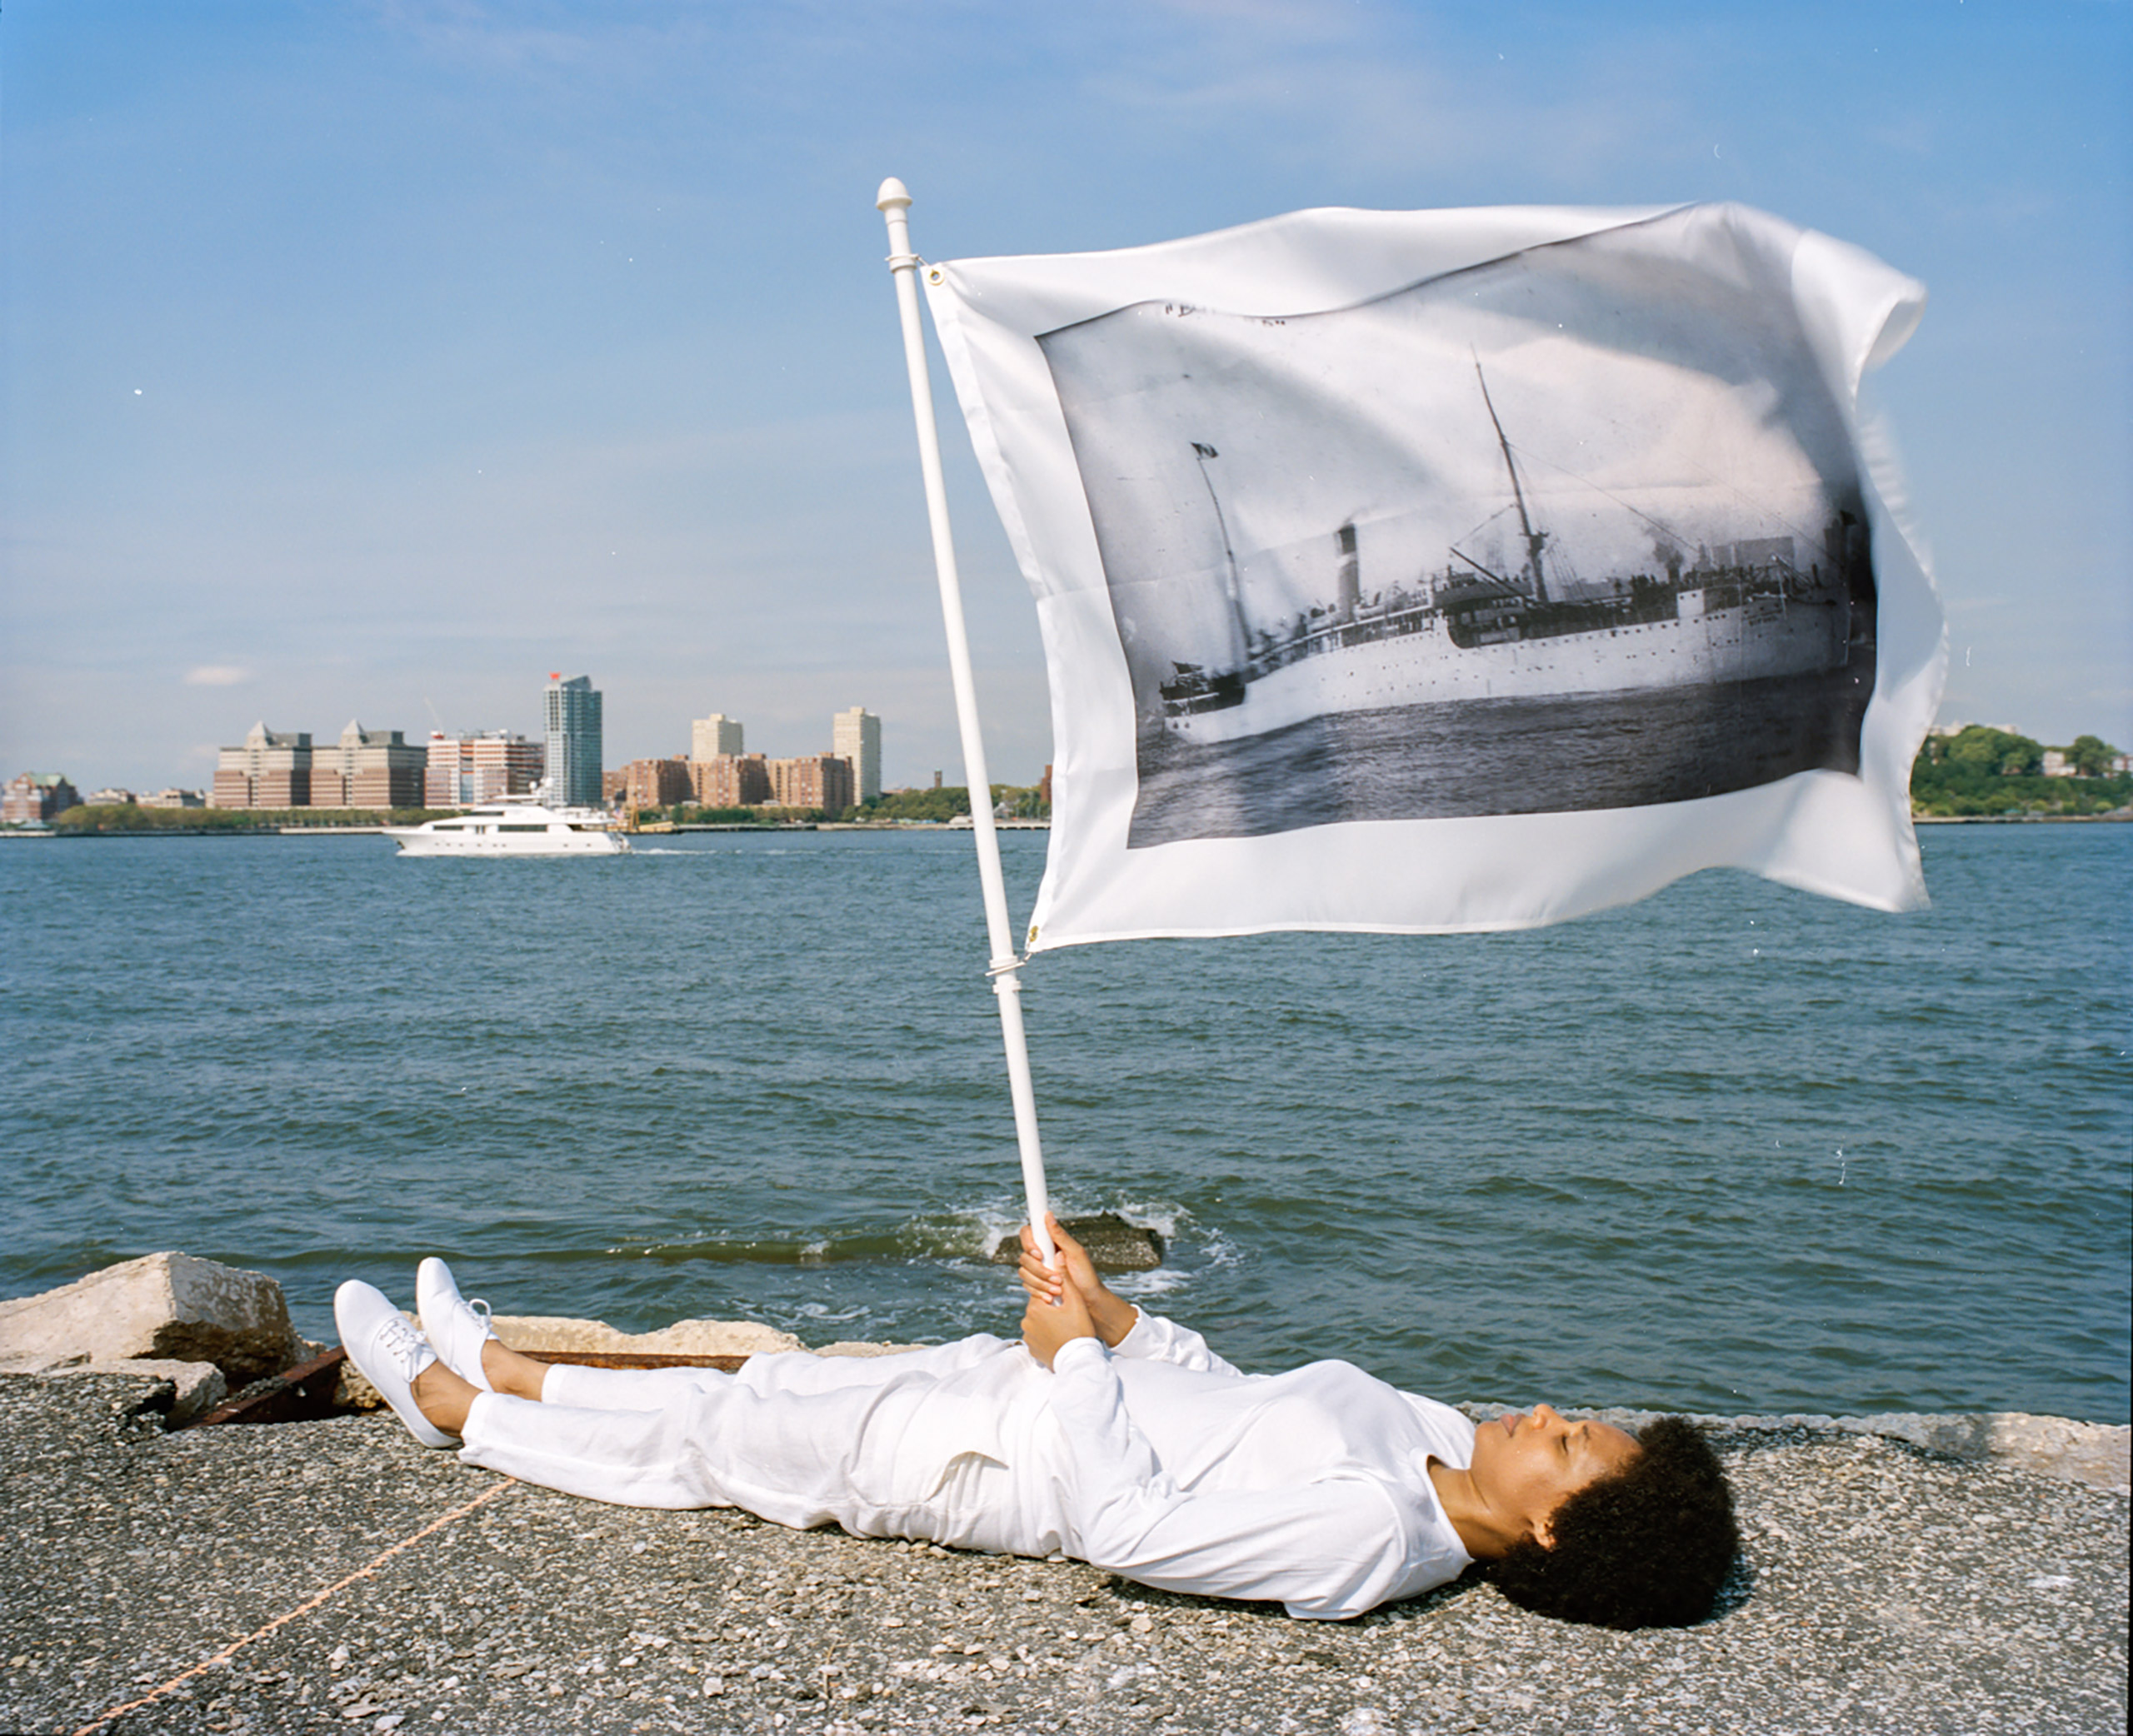 Pier 54: A Human Right to Passage. 2014.